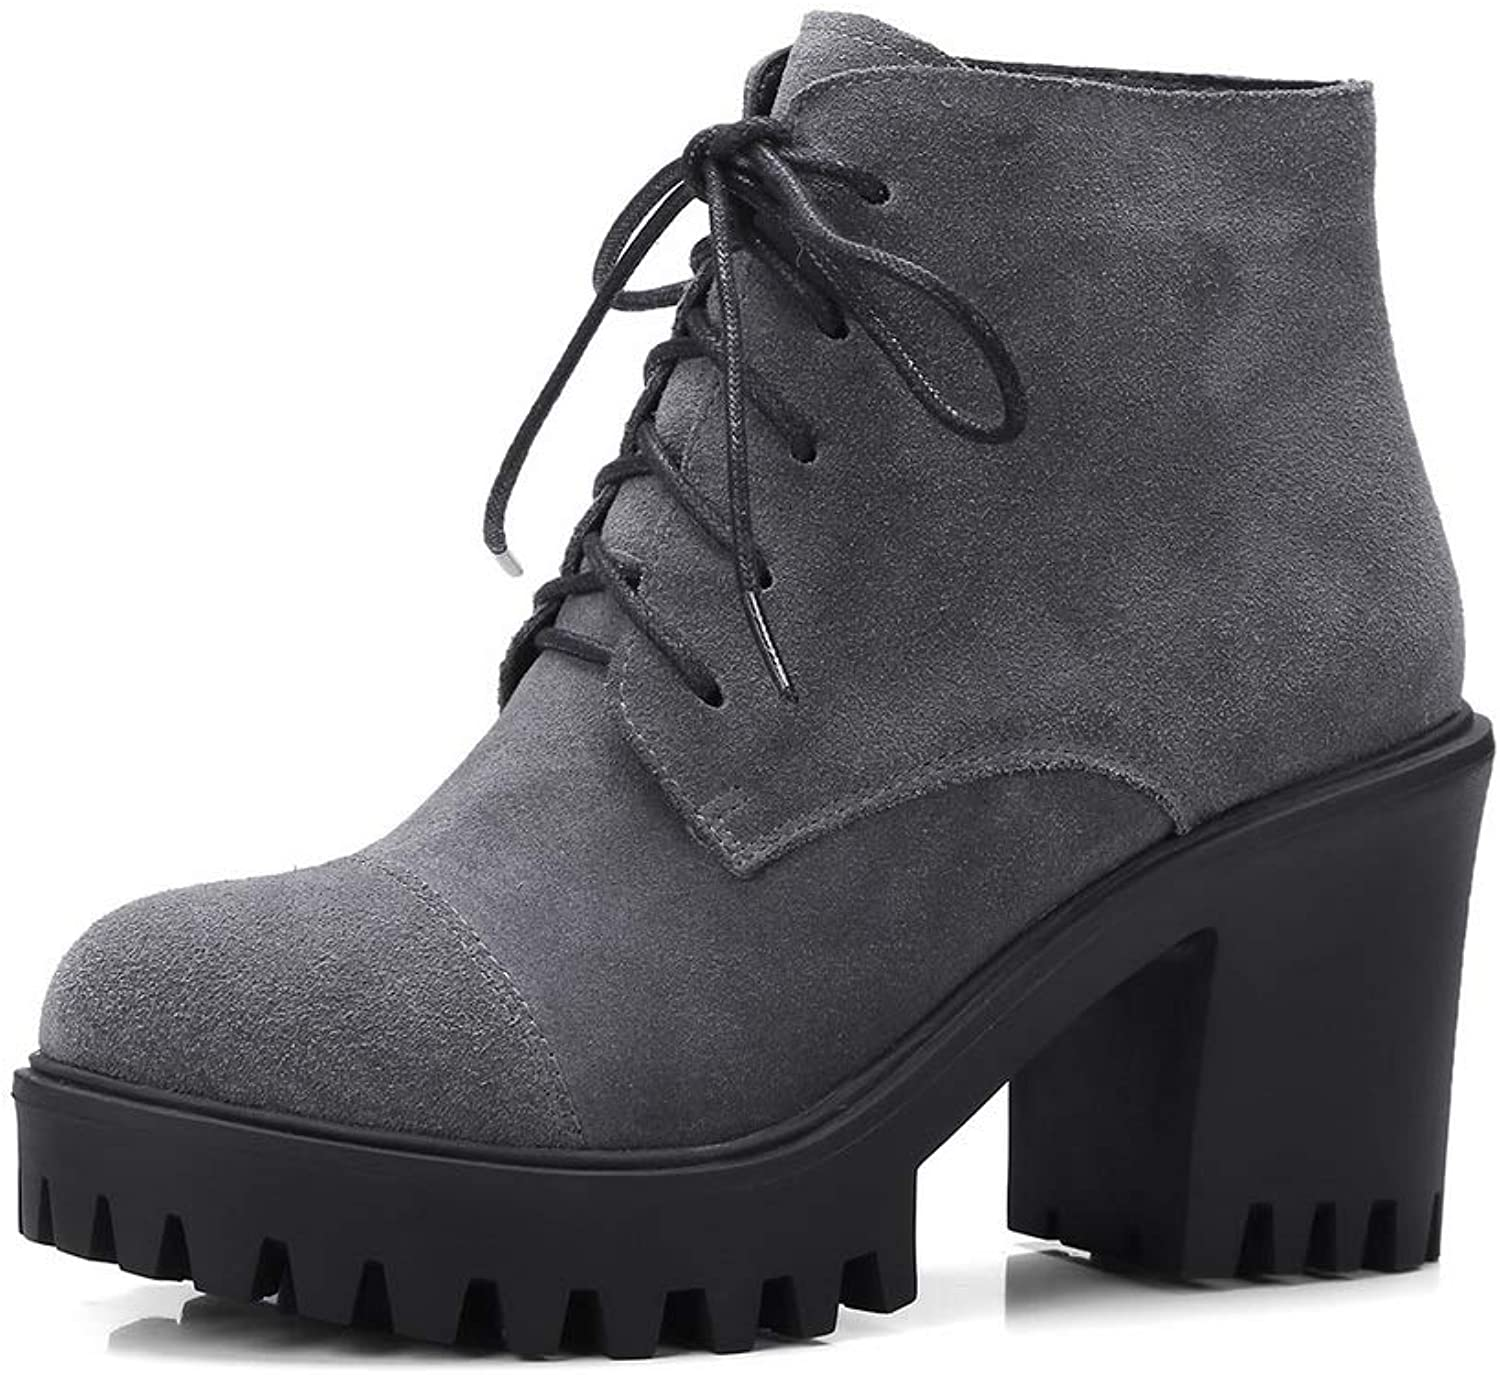 1TO9 Womens Bucket-Style Platform Solid Urethane Boots MNS03471